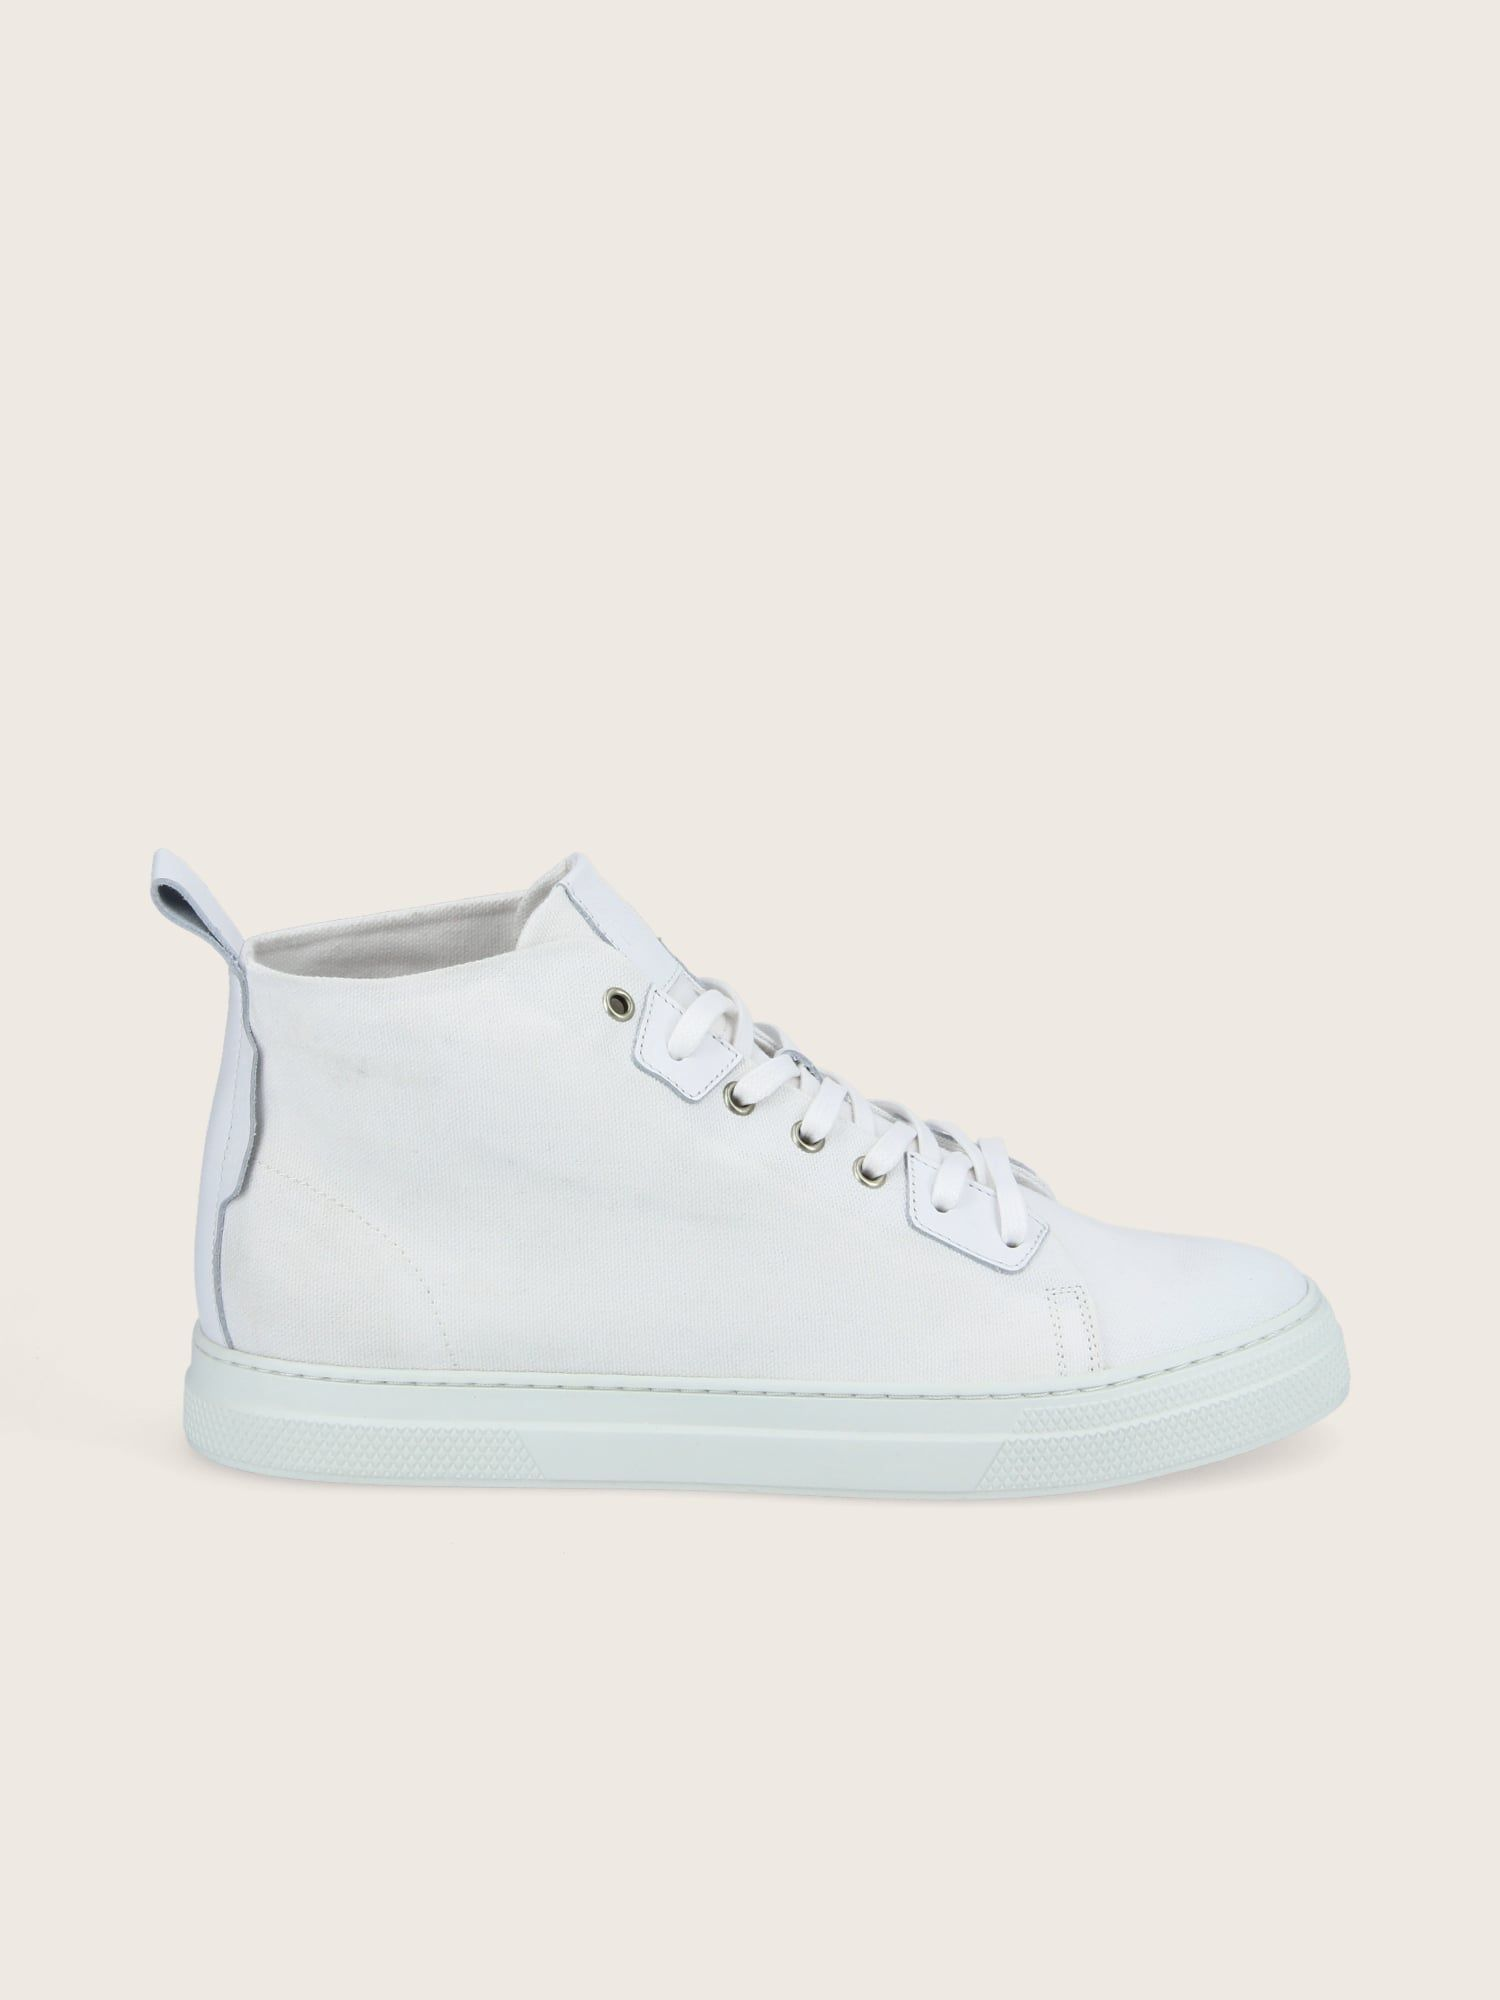 schmoove.fr SPARK HIGH CUT - LONA - WHITE SOLE WHITE